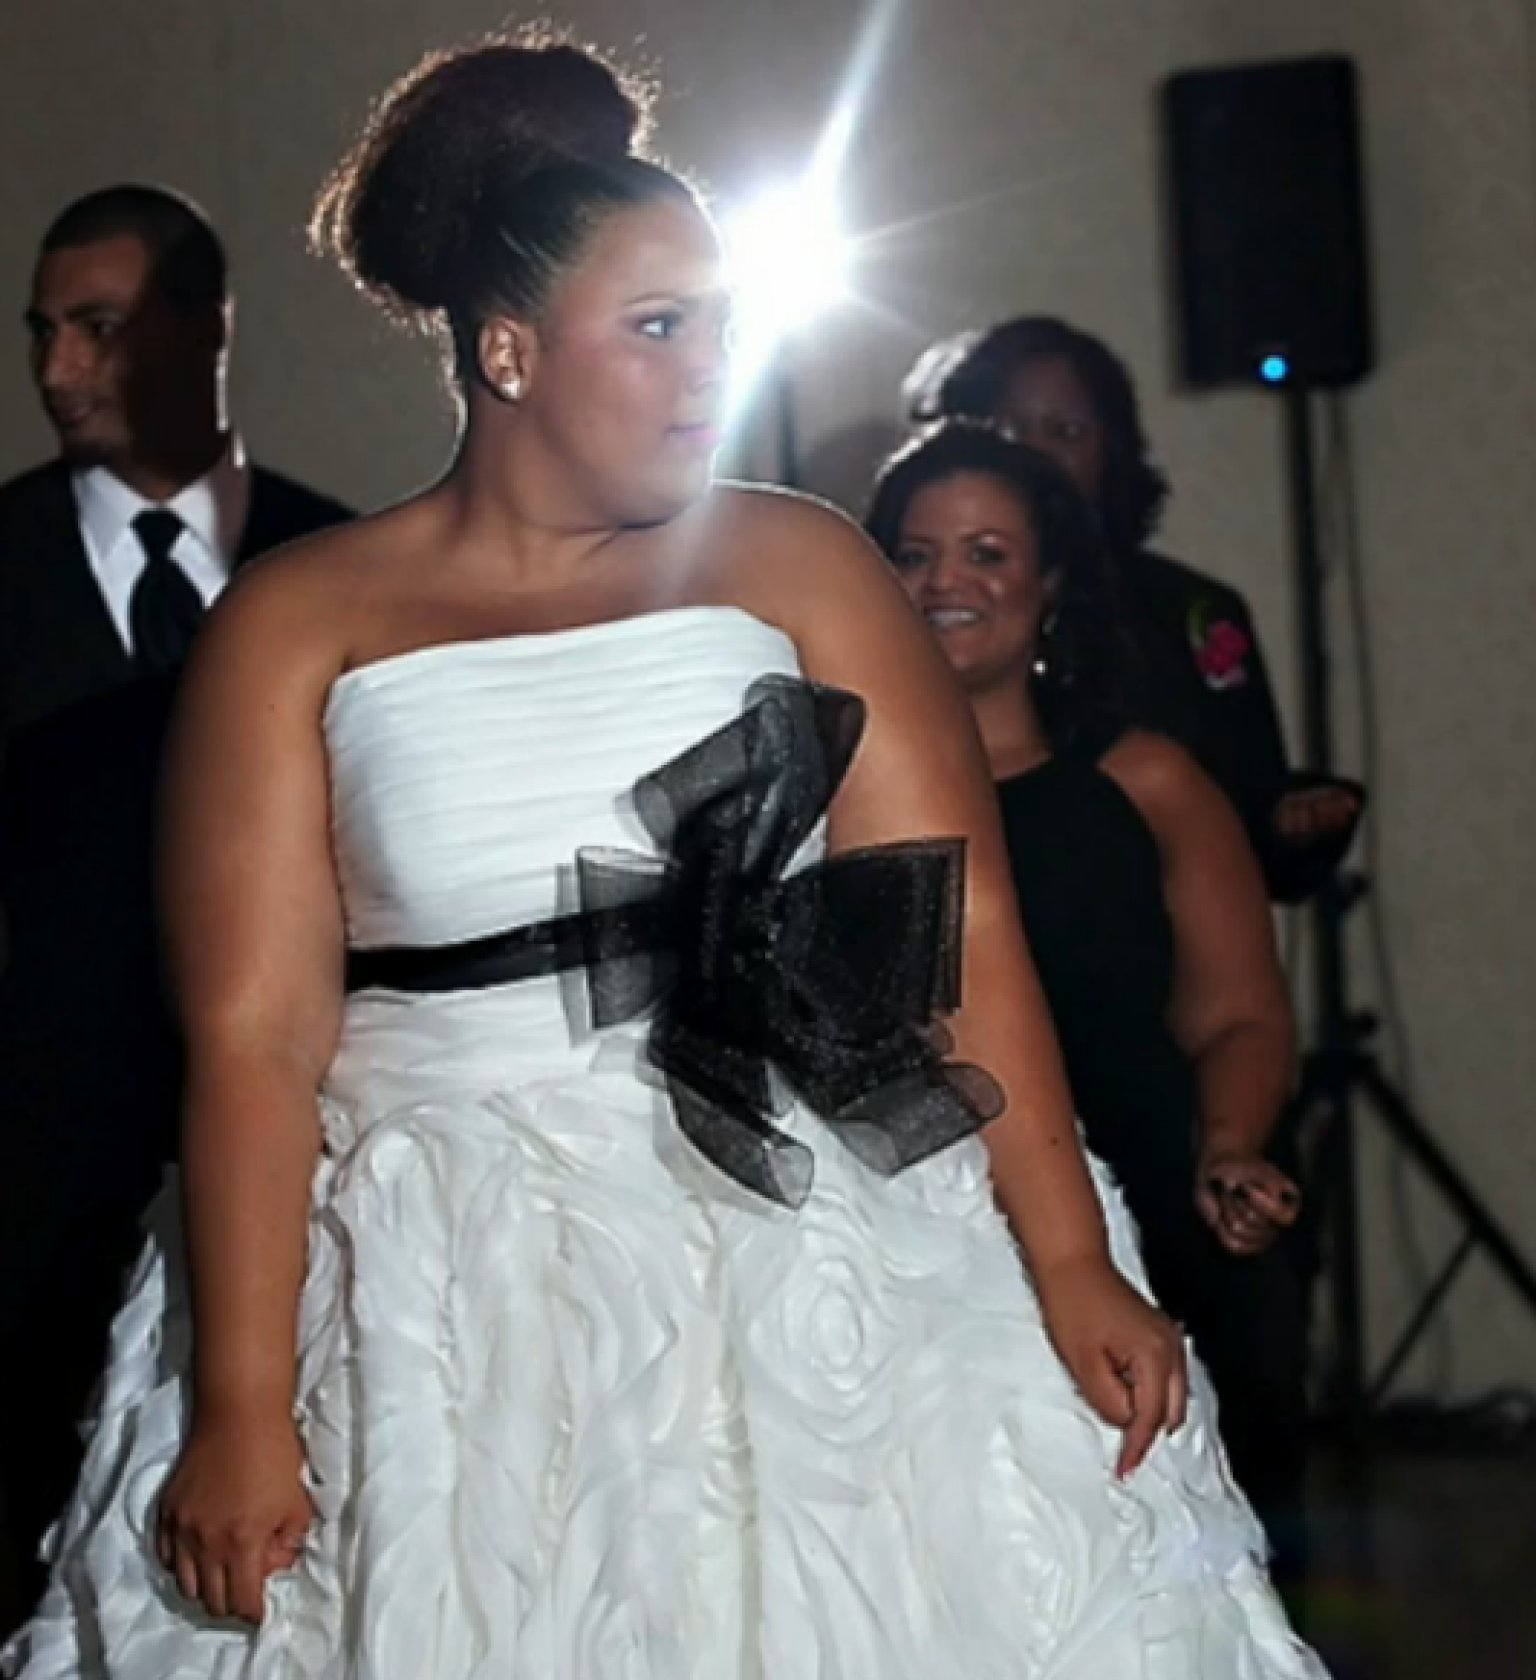 Plus-Size Bride Wrapped In Elastic Band During Wedding